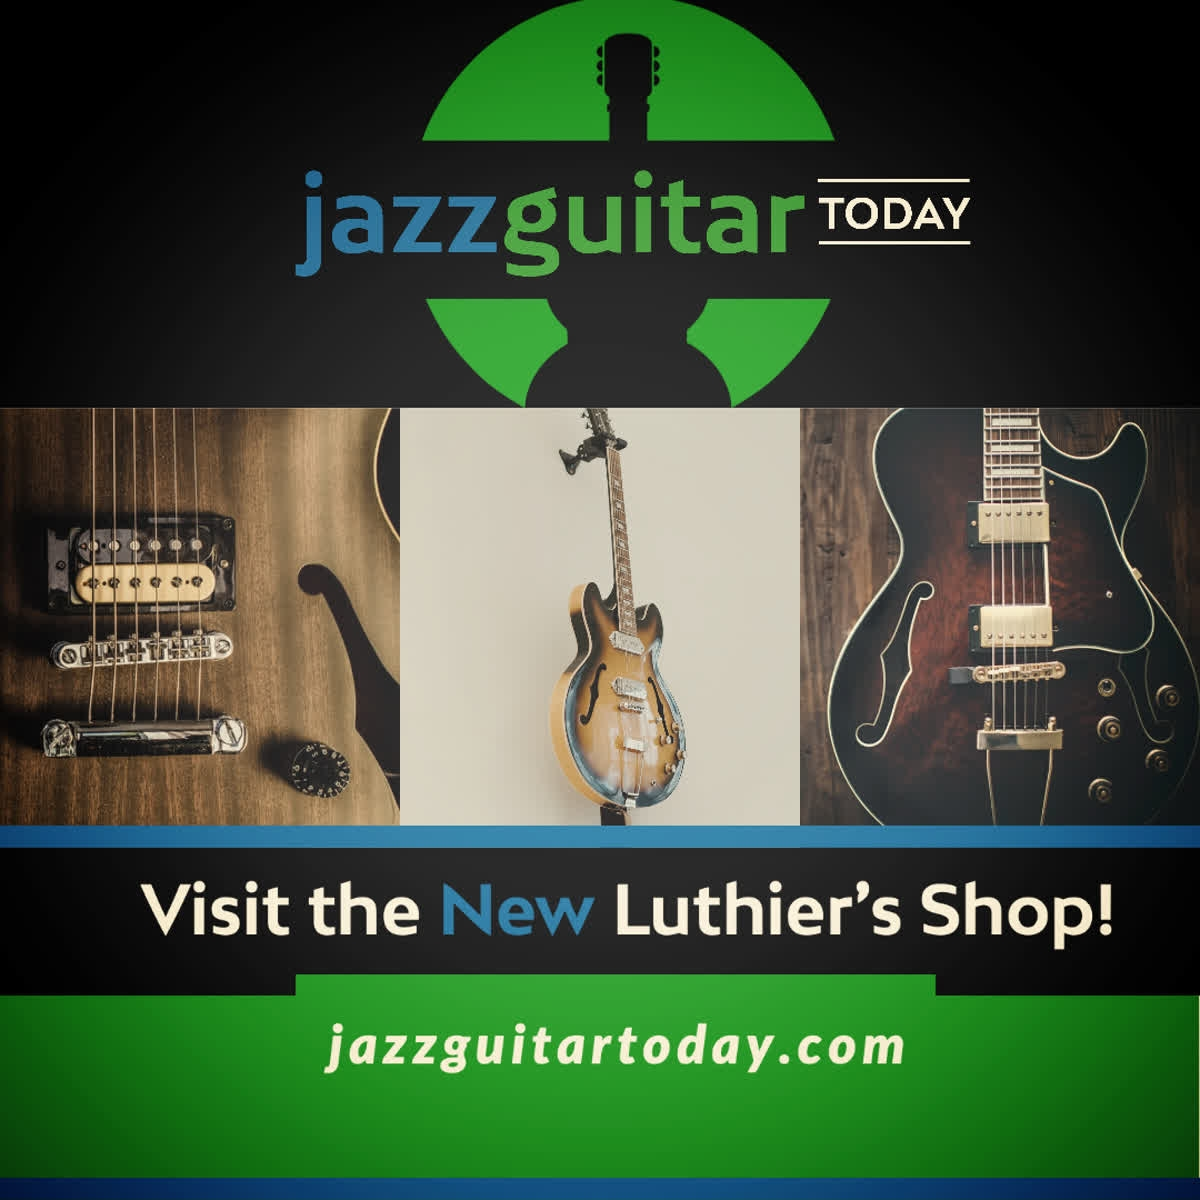 Check out the Jazz Guitar Today's LUTHIER SHOP!  Who is your favorite Luthier?  VIEW >>> https://qoo.ly/368iwd   #luthier #jazzguitartoday #customguitar #guitar #archtop #archtopguitarpic.twitter.com/icYXB6k1Eo